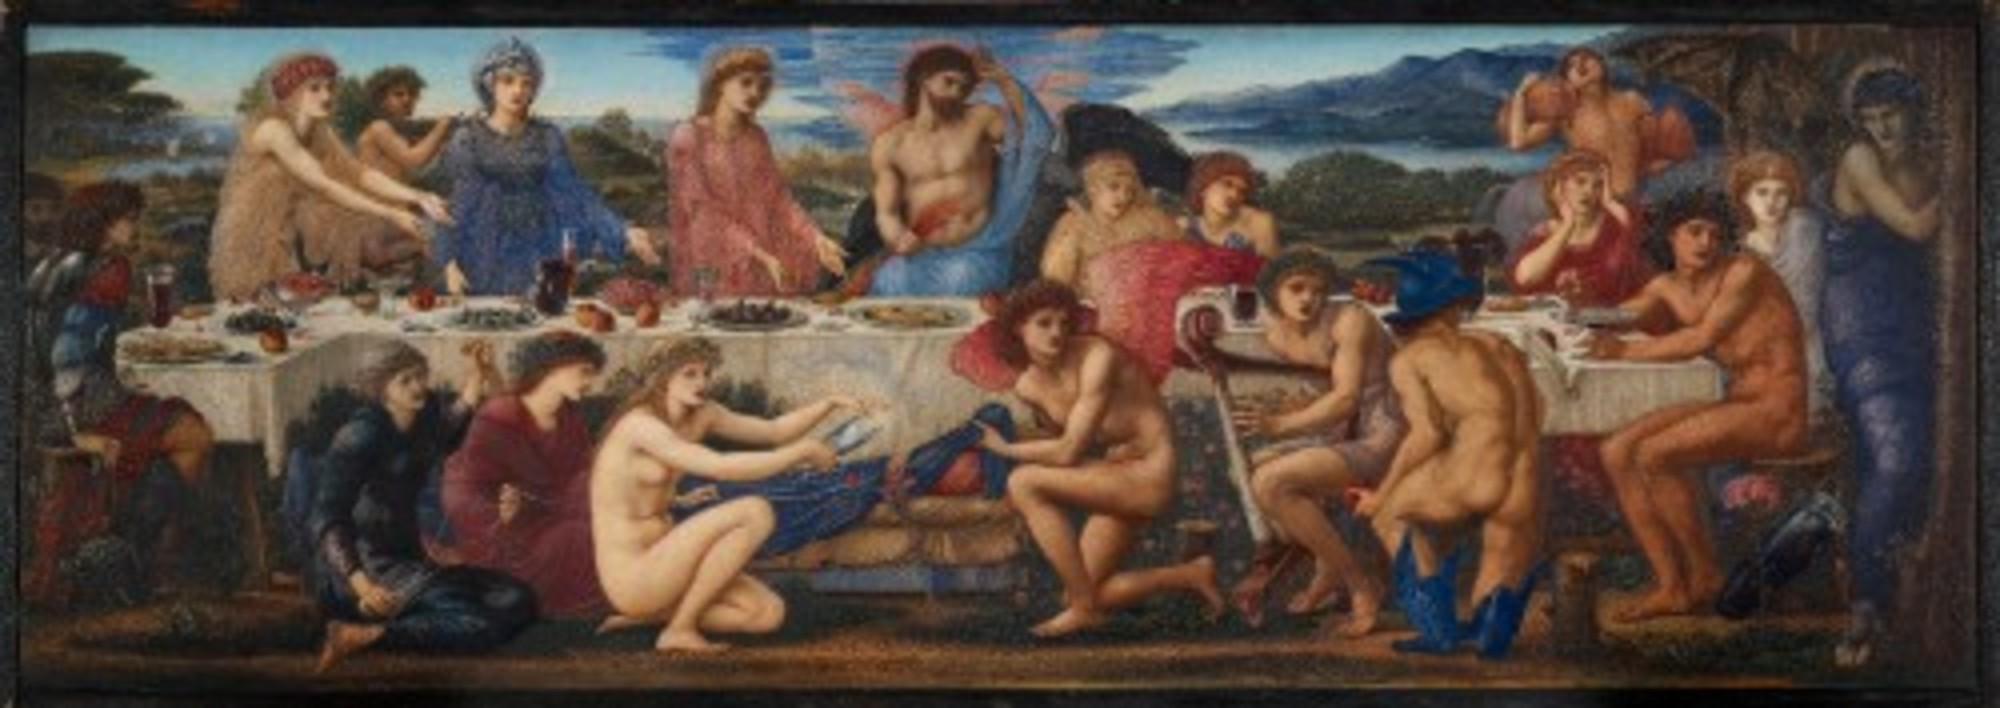 Edward-Burne-Jones---The-Feast-of-Peleus---Google-Art-Project.jpg